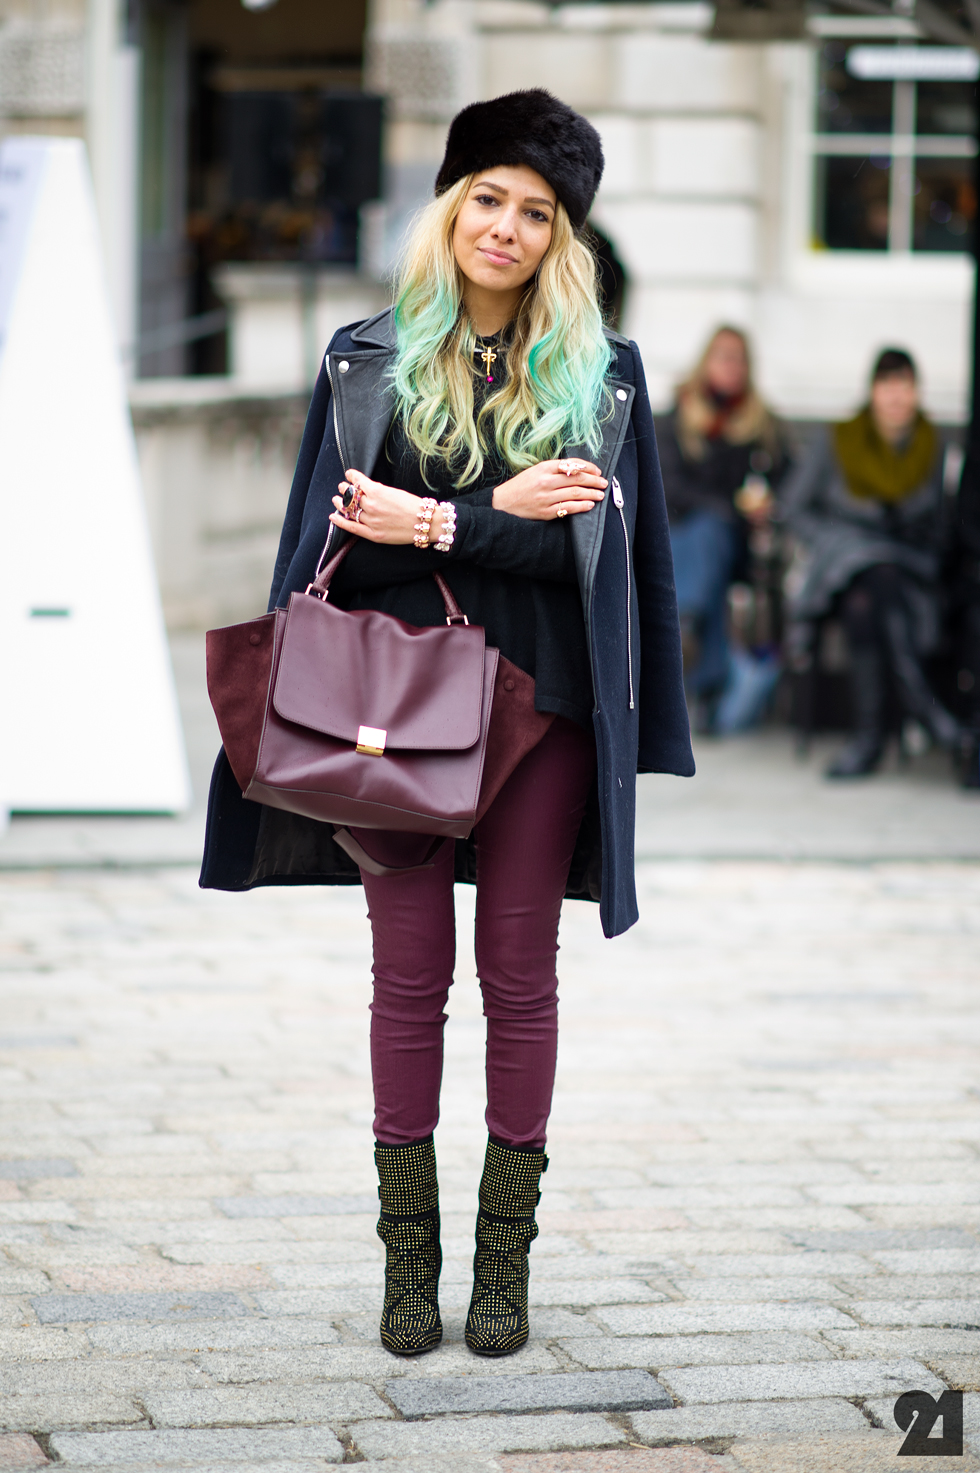 Fall Street Fashion 2013 For Girls: Street Style: Hats